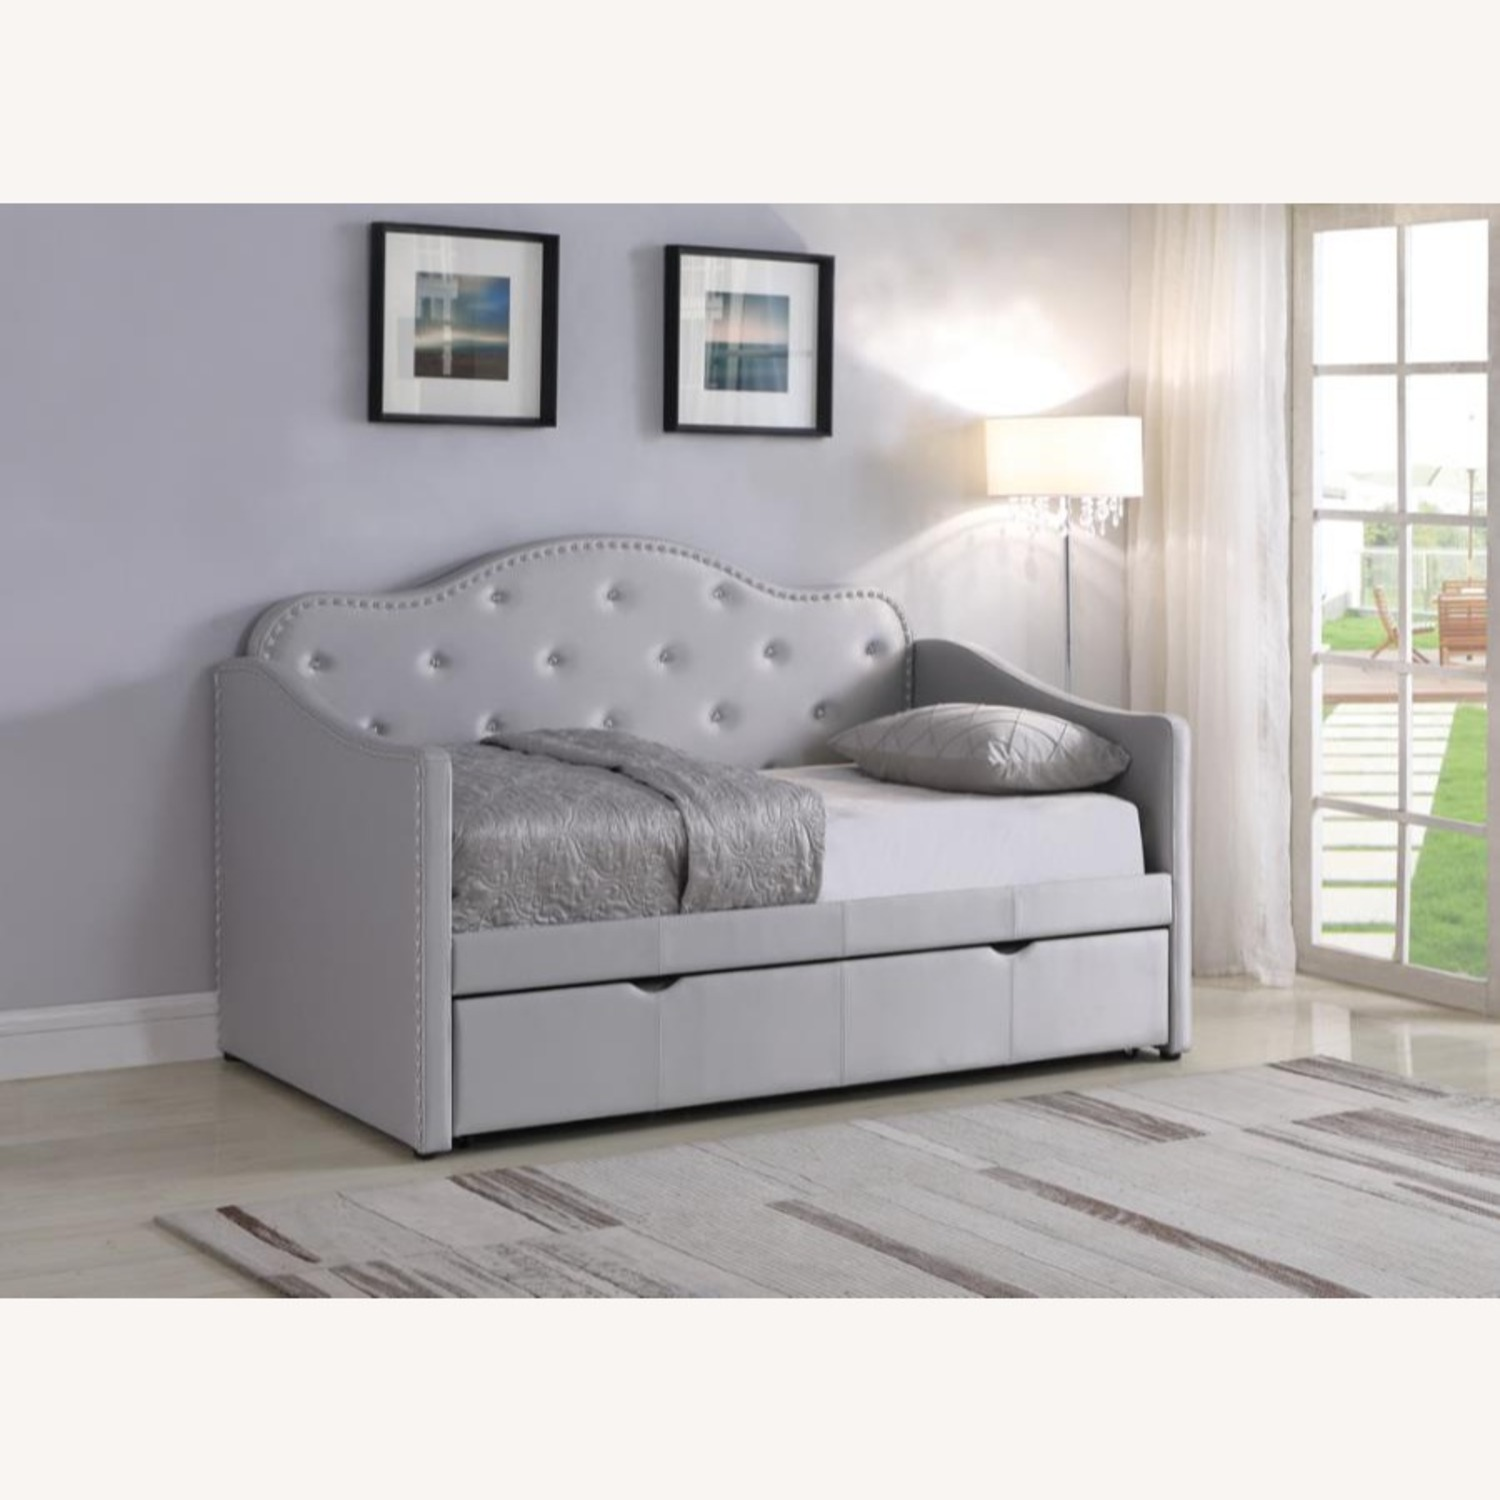 Daybed In Pearlescent Grey Leatherette Finish - image-8